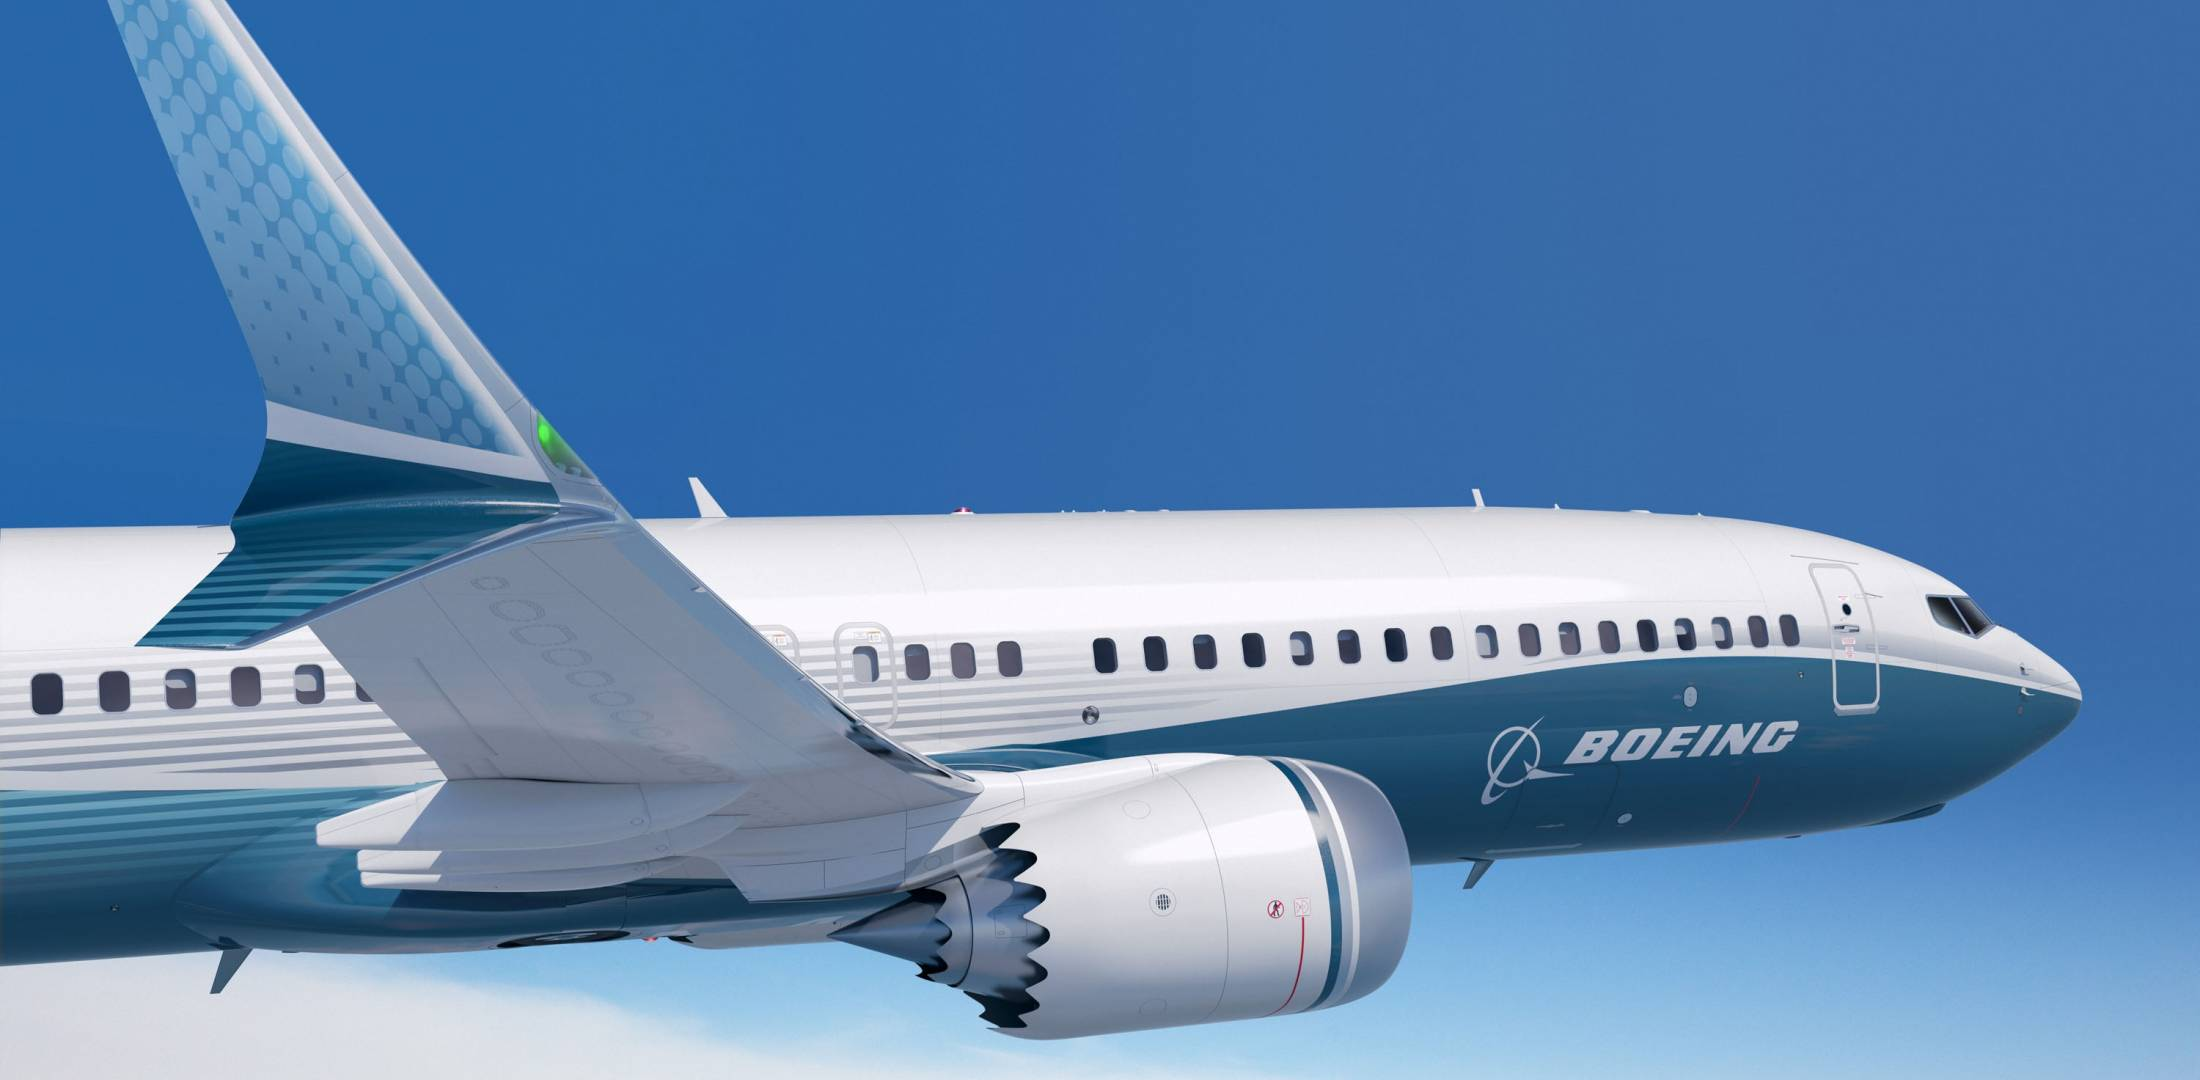 Boeing's new winglet design for the 737 Max